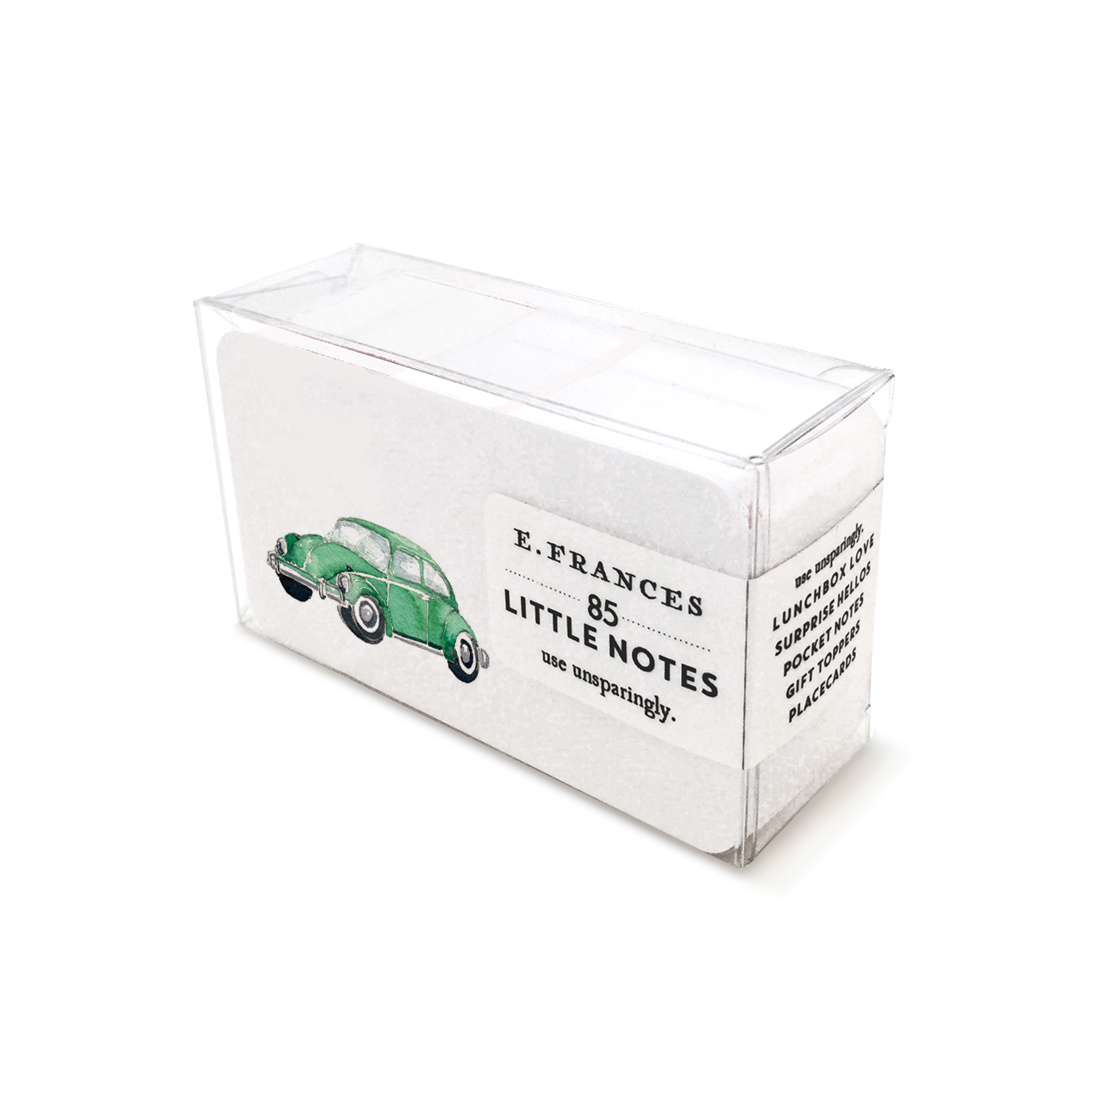 E. Frances Paper Studio Green Buggy Little Notes, set of 85